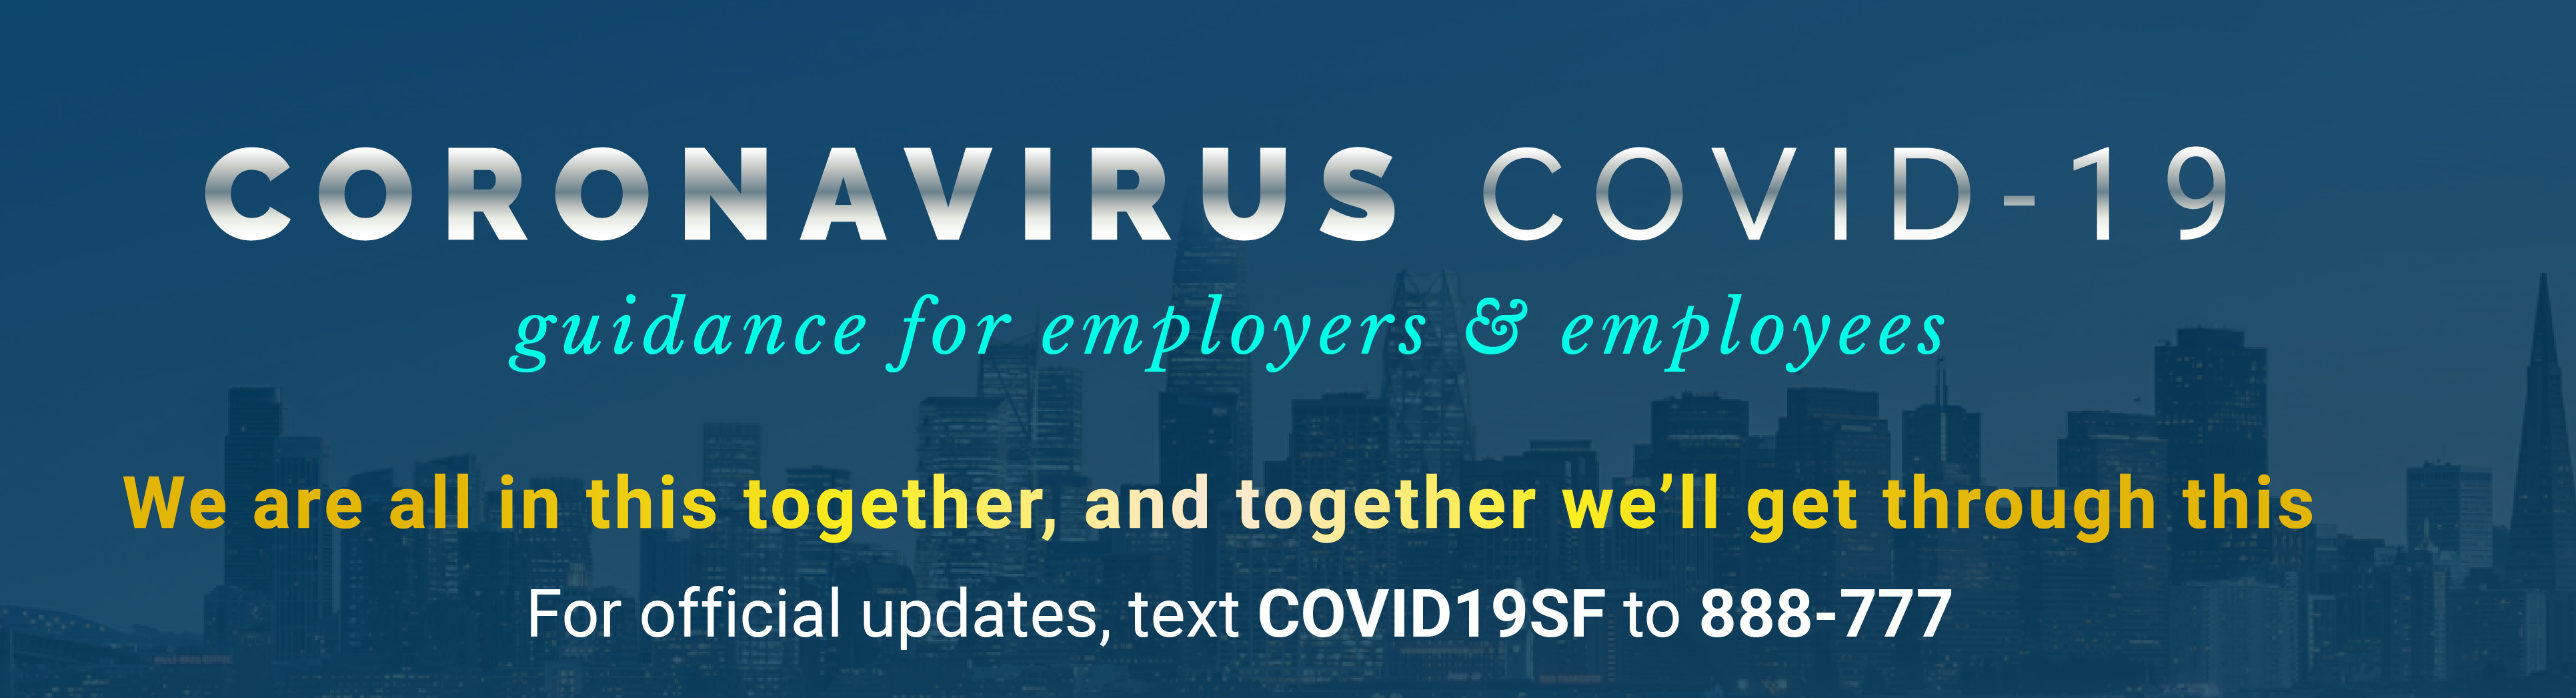 COVID19 Guidance for Employers and Employees